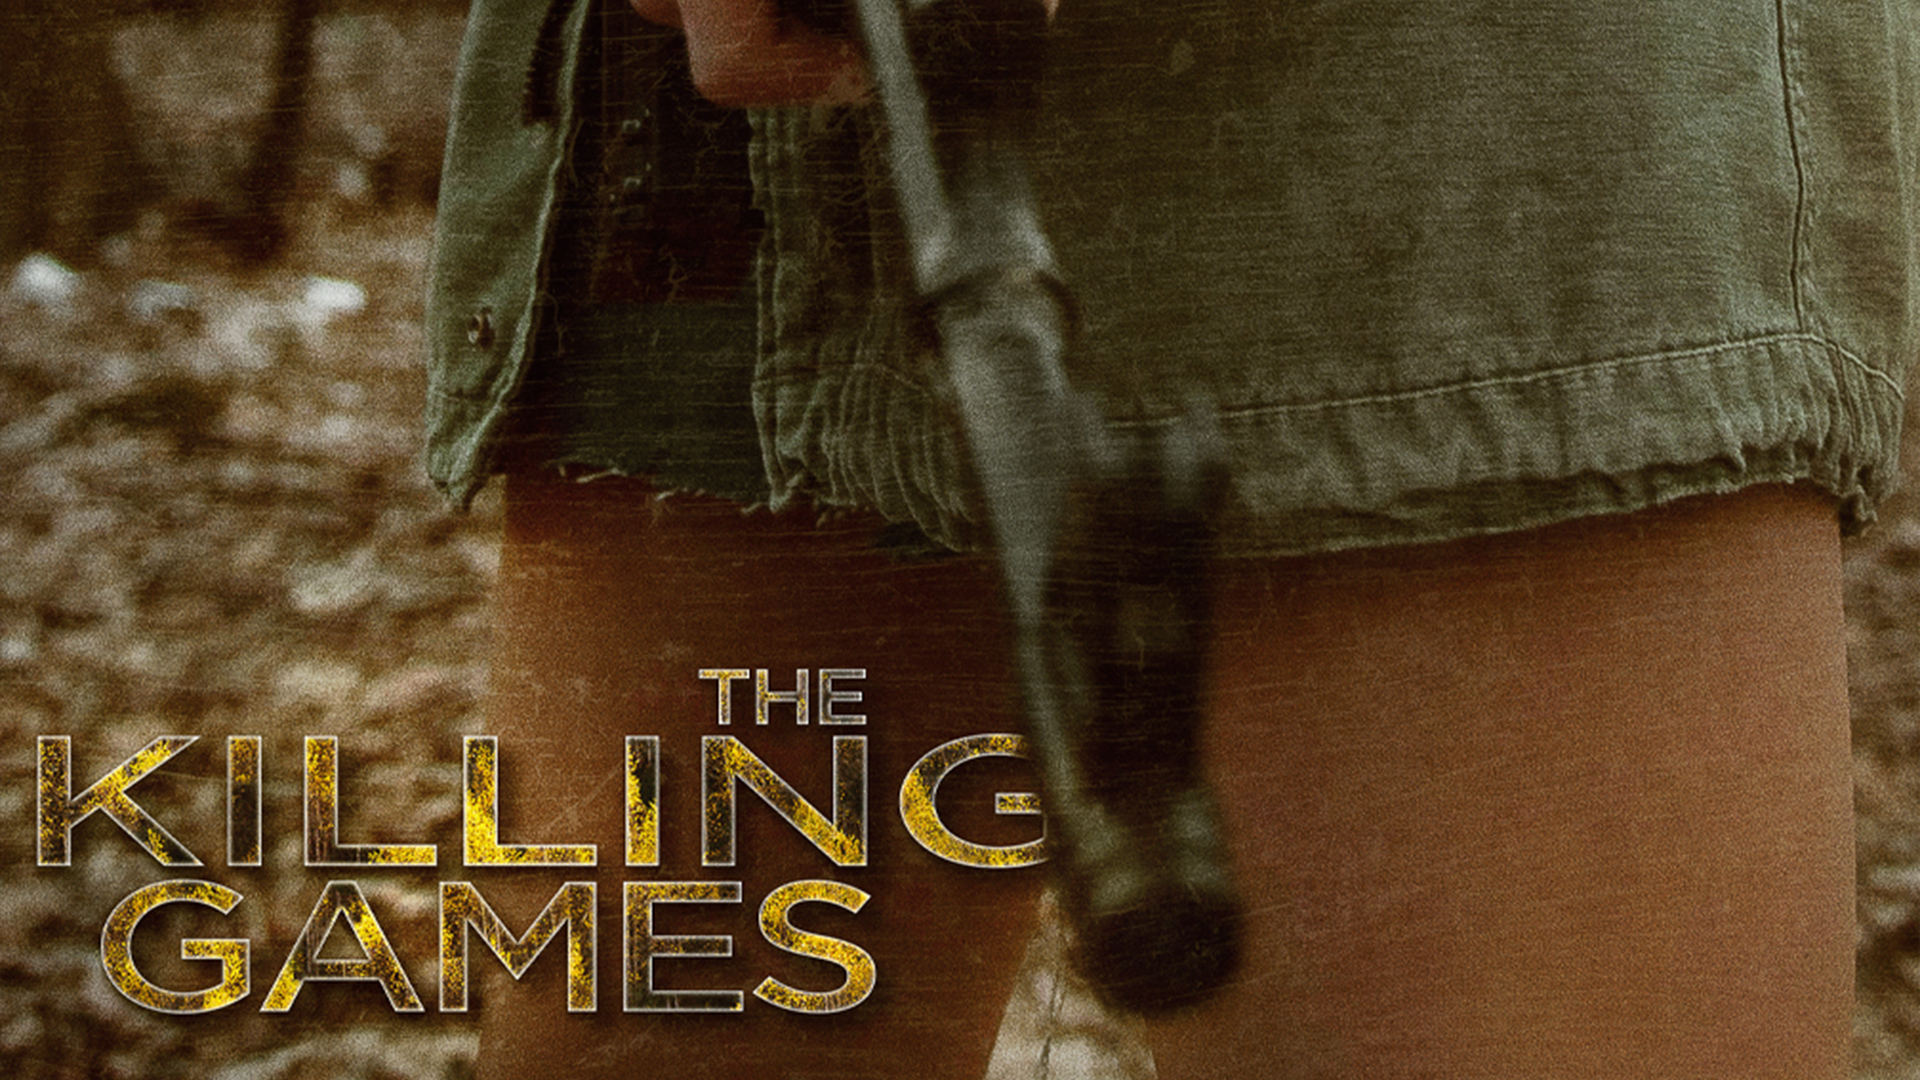 The Killing Games